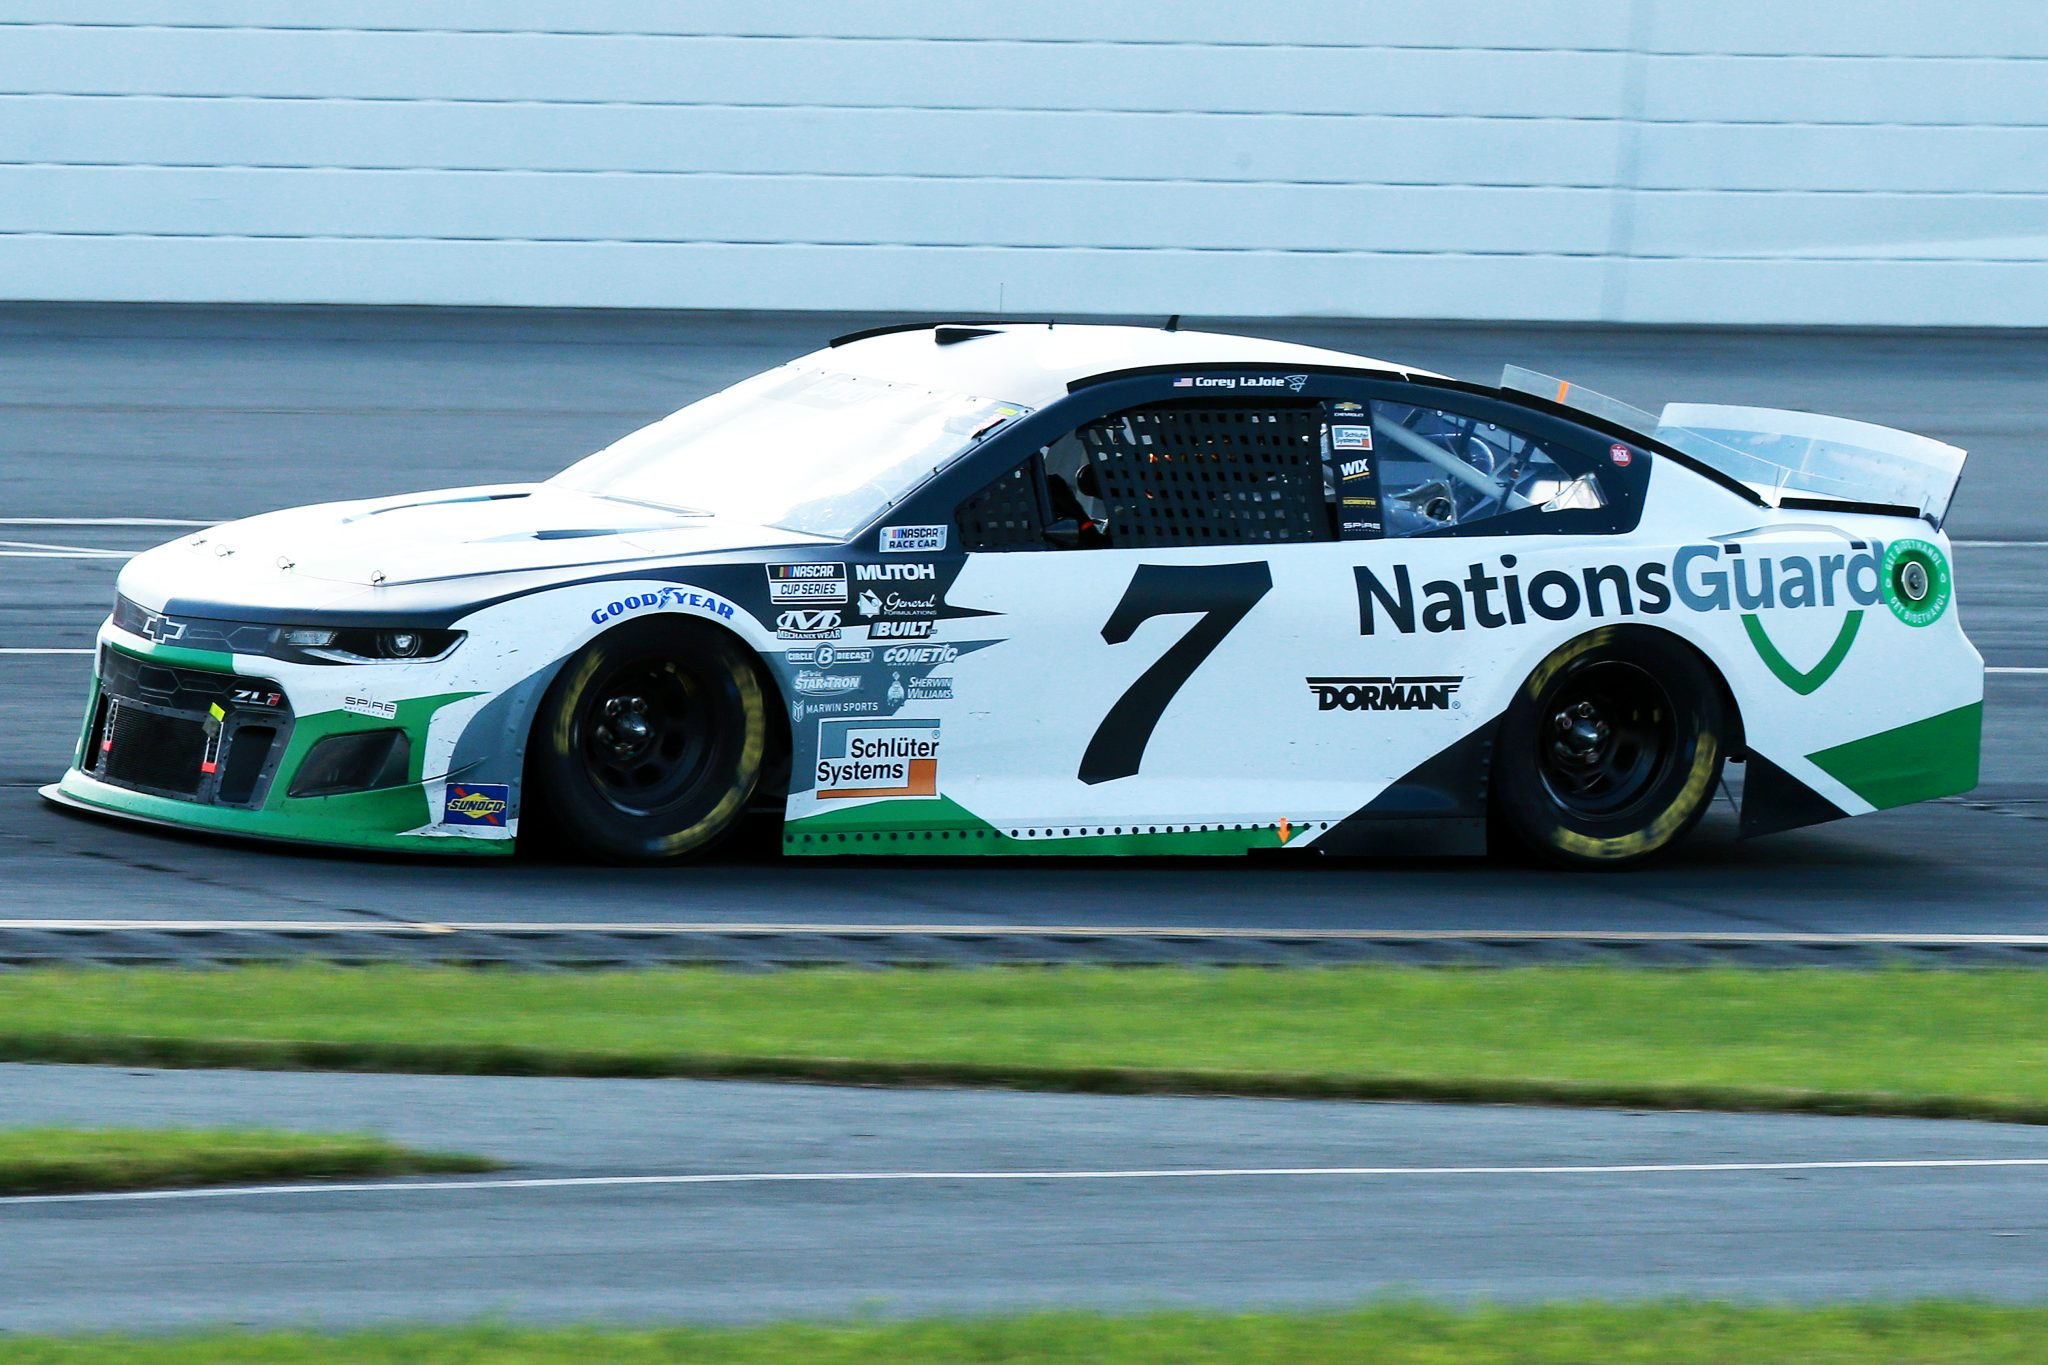 LONG POND, PENNSYLVANIA - JUNE 27: Corey LaJoie, driver of the #7 Nations Guard Chevrolet,drives during the NASCAR Cup Series Explore the Pocono Mountains 350 at Pocono Raceway on June 27, 2021 in Long Pond, Pennsylvania. (Photo by Sean Gardner/Getty Images) | Getty Images